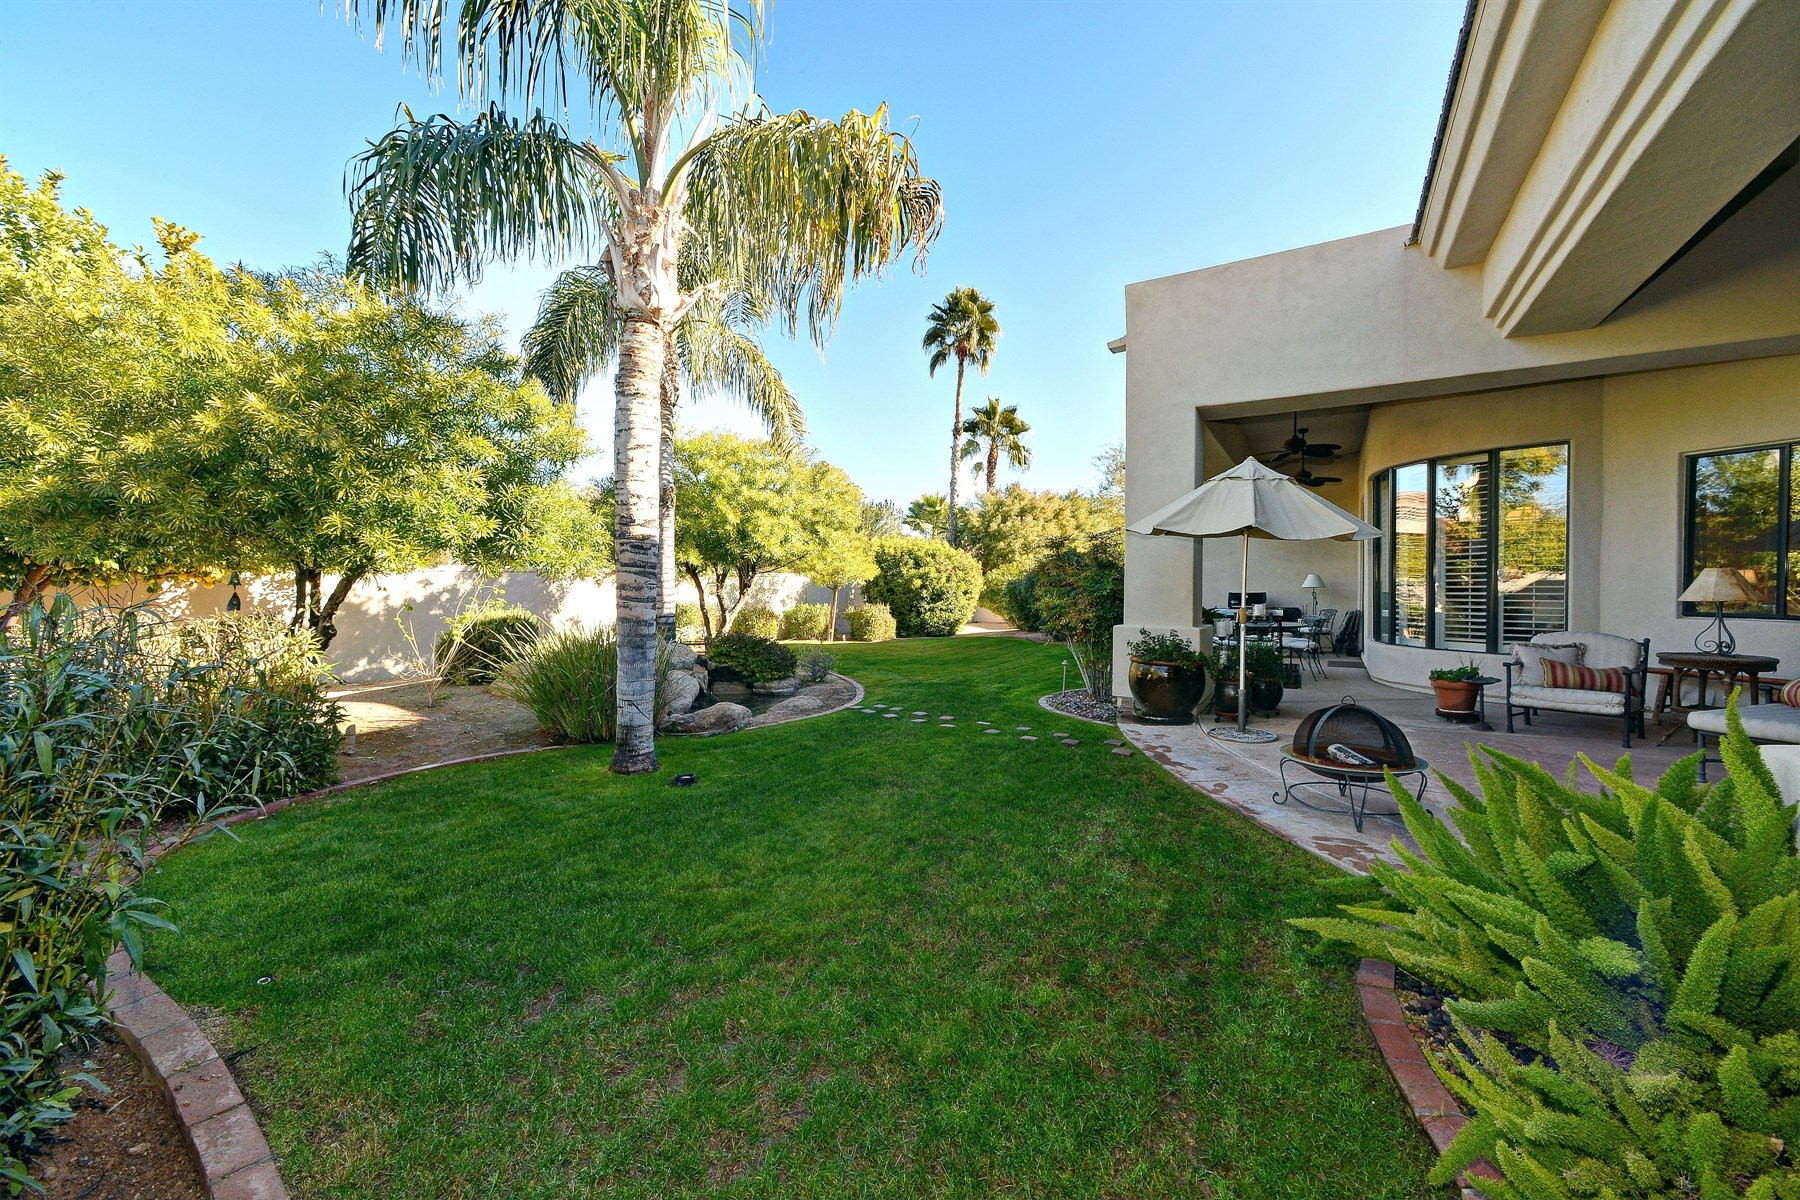 Property For Sale at Adorable Home Conveniently Located In Guard Gated Cheney Estates